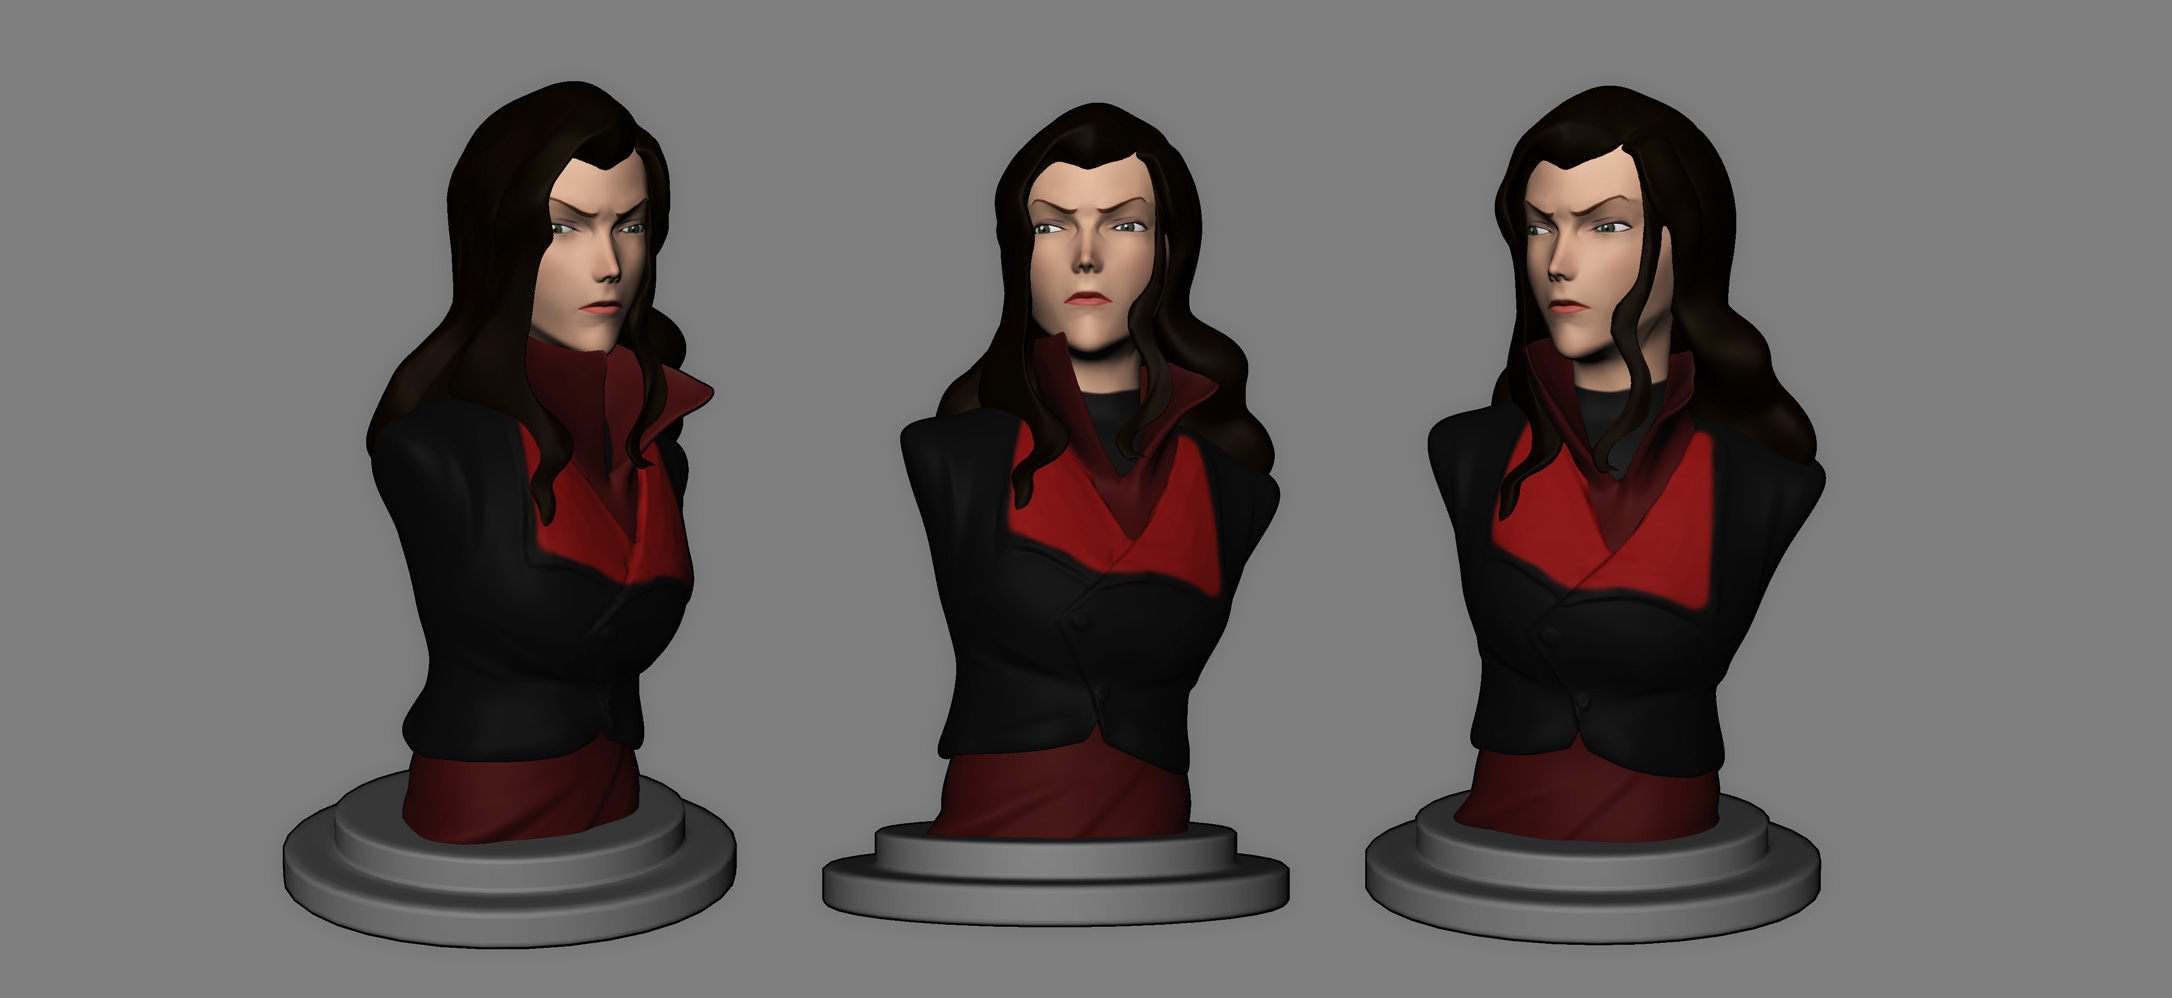 _wip_1__asami_sato___the_legend_of_korra_by_yuliuskrisna-d8byppm.jpg